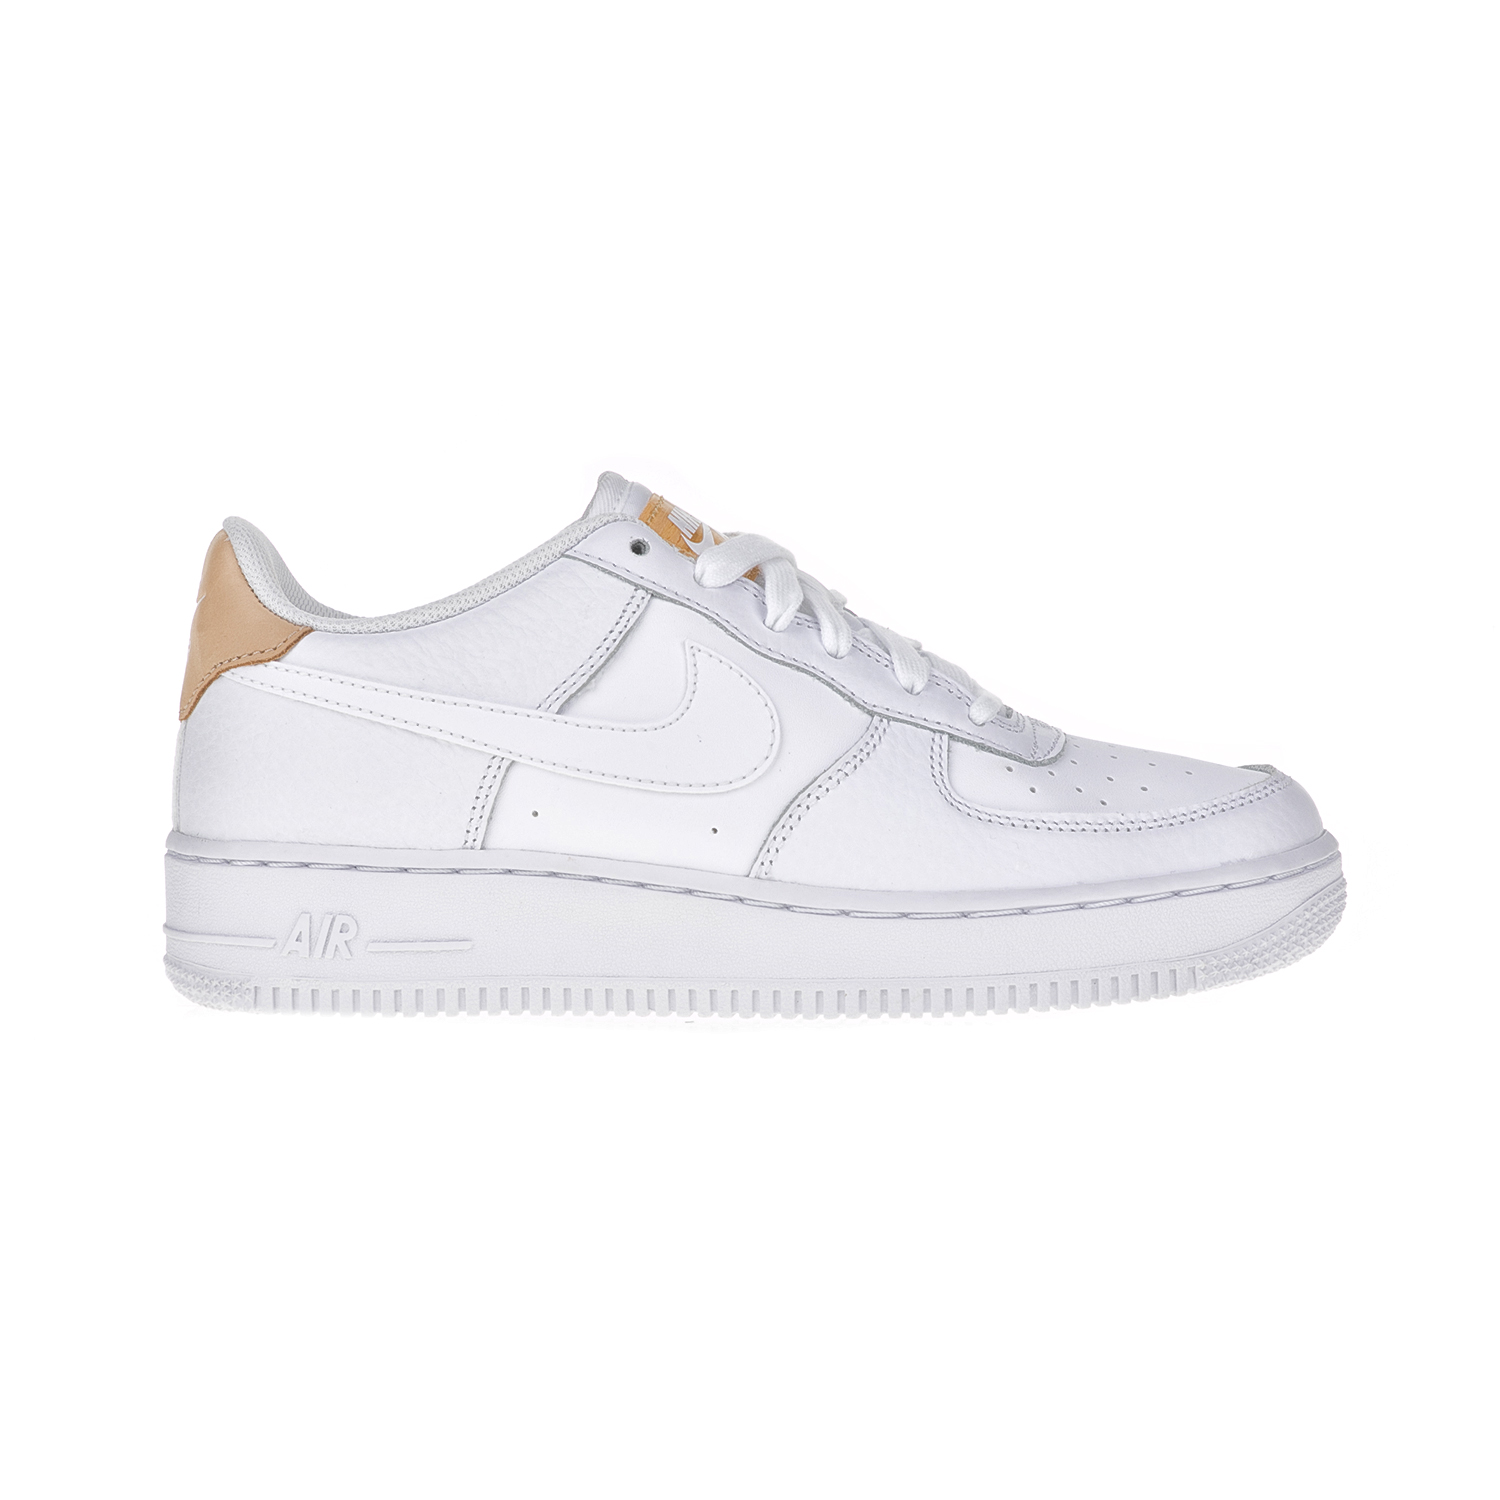 NIKE – Παιδικά παπούτσια AIR FORCE 1 LV8 (GS) λευκά